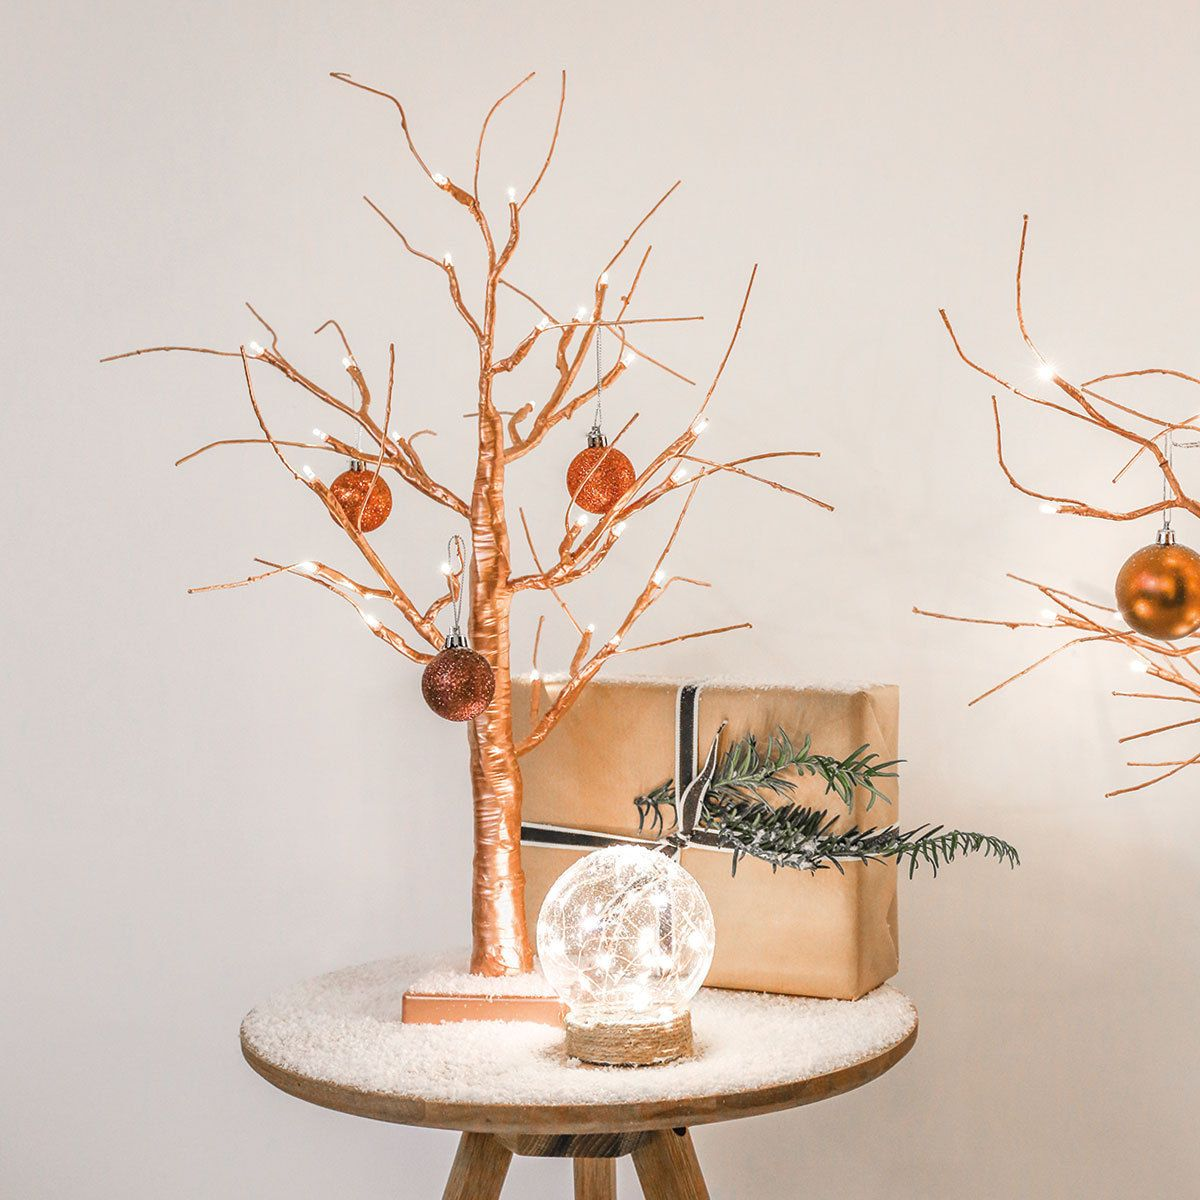 2ft Copper Battery Twig Tree This Unique And Stylish 2ft Copper Tree Can Be Used In An Array Of Home Copper Christmas Twig Christmas Tree Twig Tree